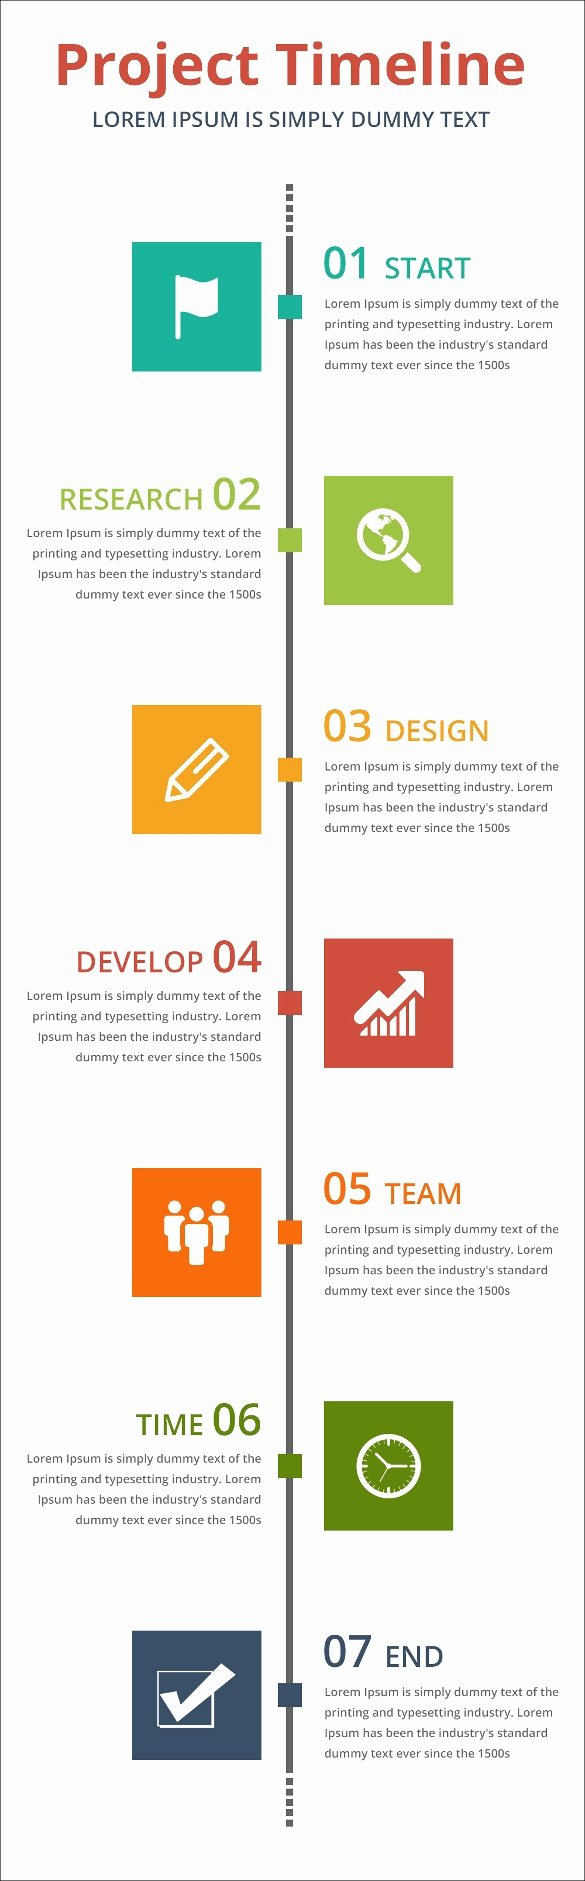 Project Timeline Template Word Awesome Project Timeline Templates 21 Free Word Ppt format